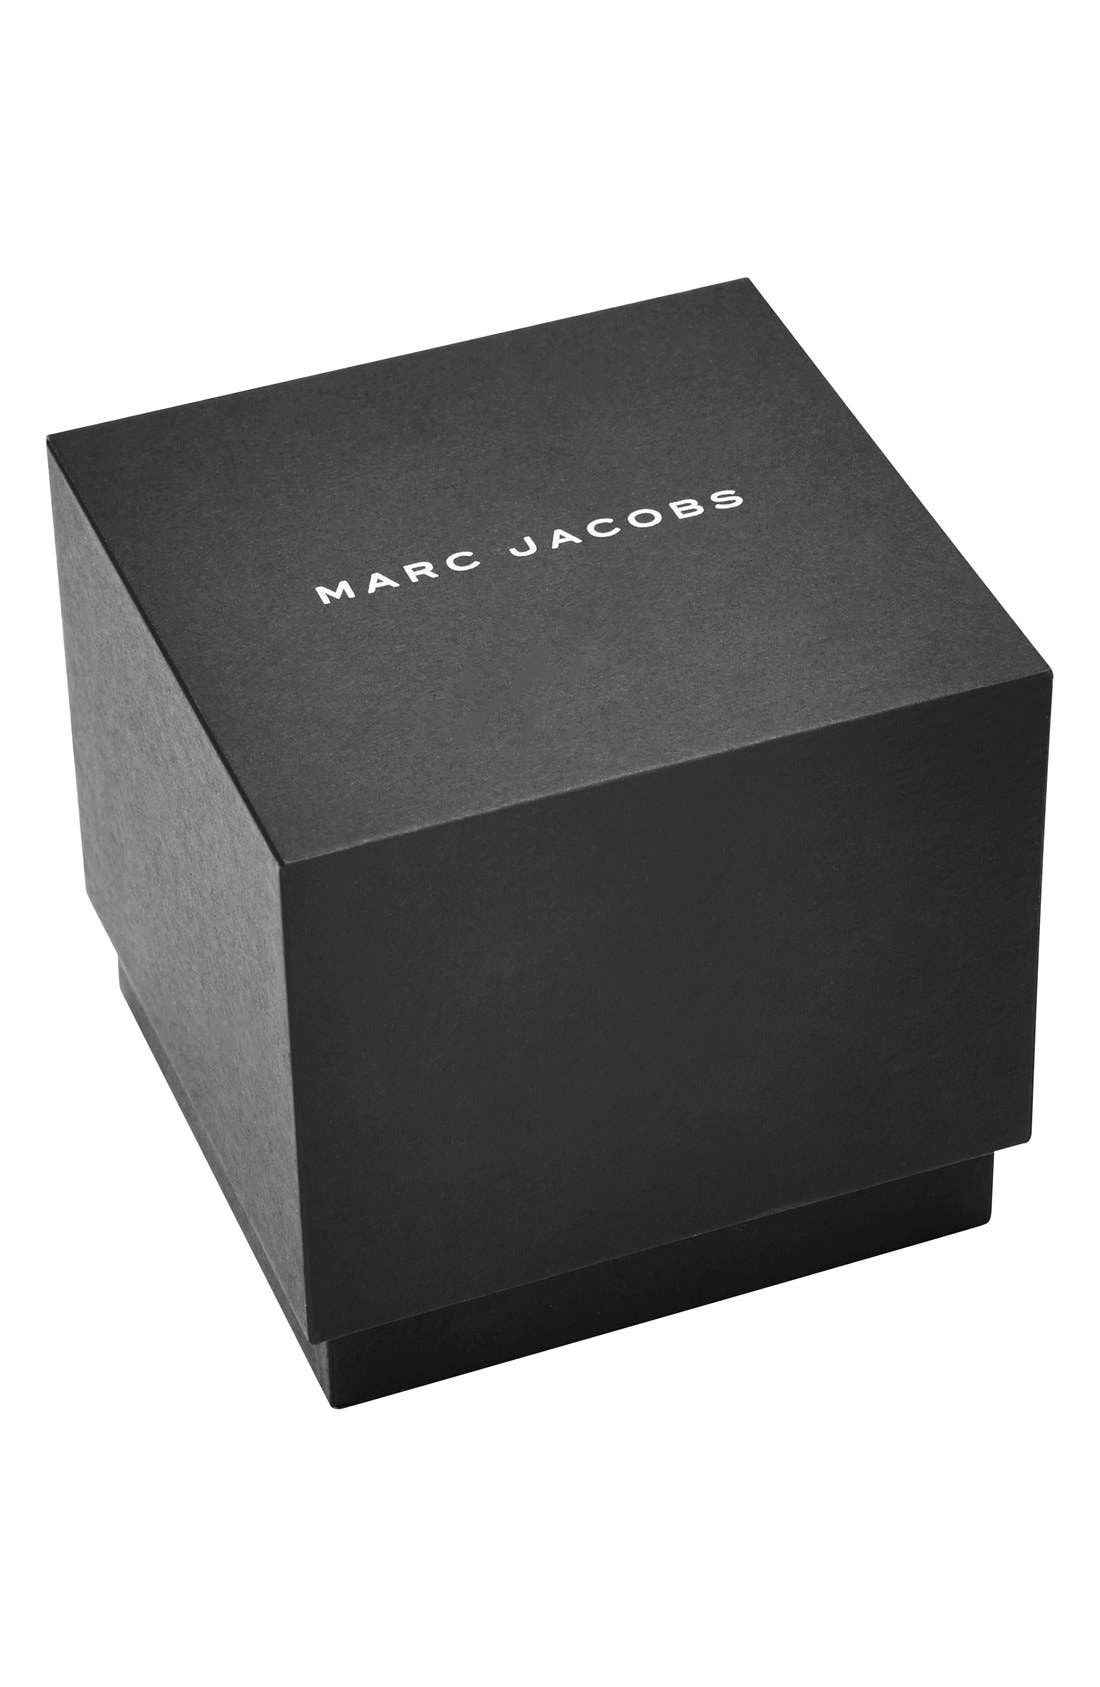 Alternate Image 3  - MARC JACOBS 'The Jacobs' Leather Strap Watch, 30mm